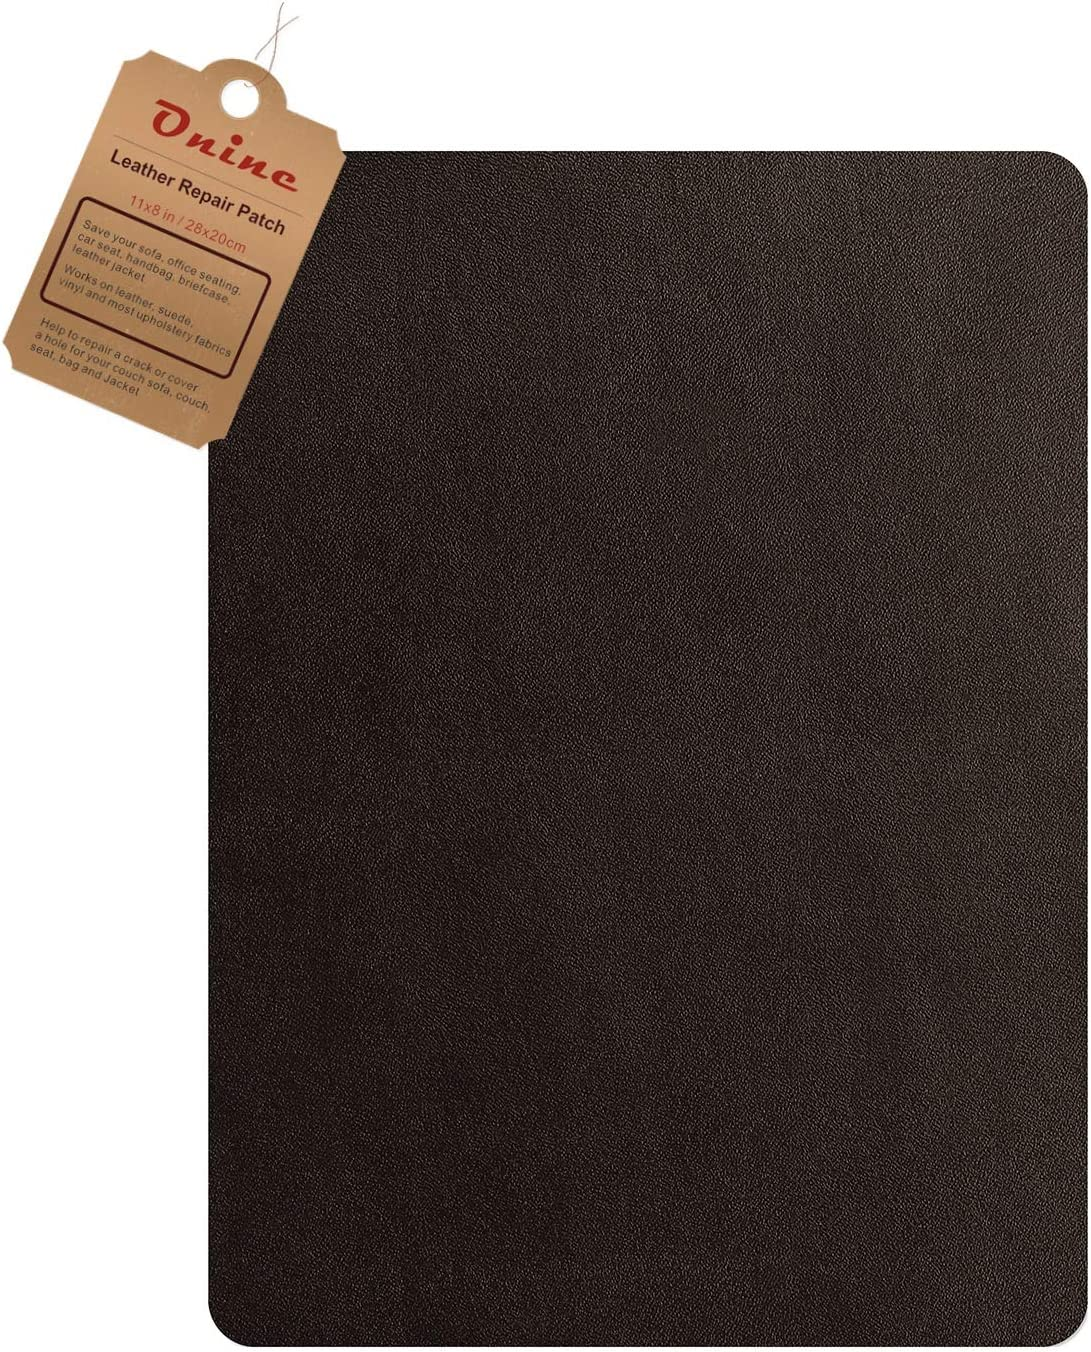 Leather Couch Patch, Genuine Faux Leather Repair Patch, Peel and Stick for Sofas, car Seats, Hand Bags,Furniture, Jackets, Large Size 8-inch x 11-inch (Dark Brown)